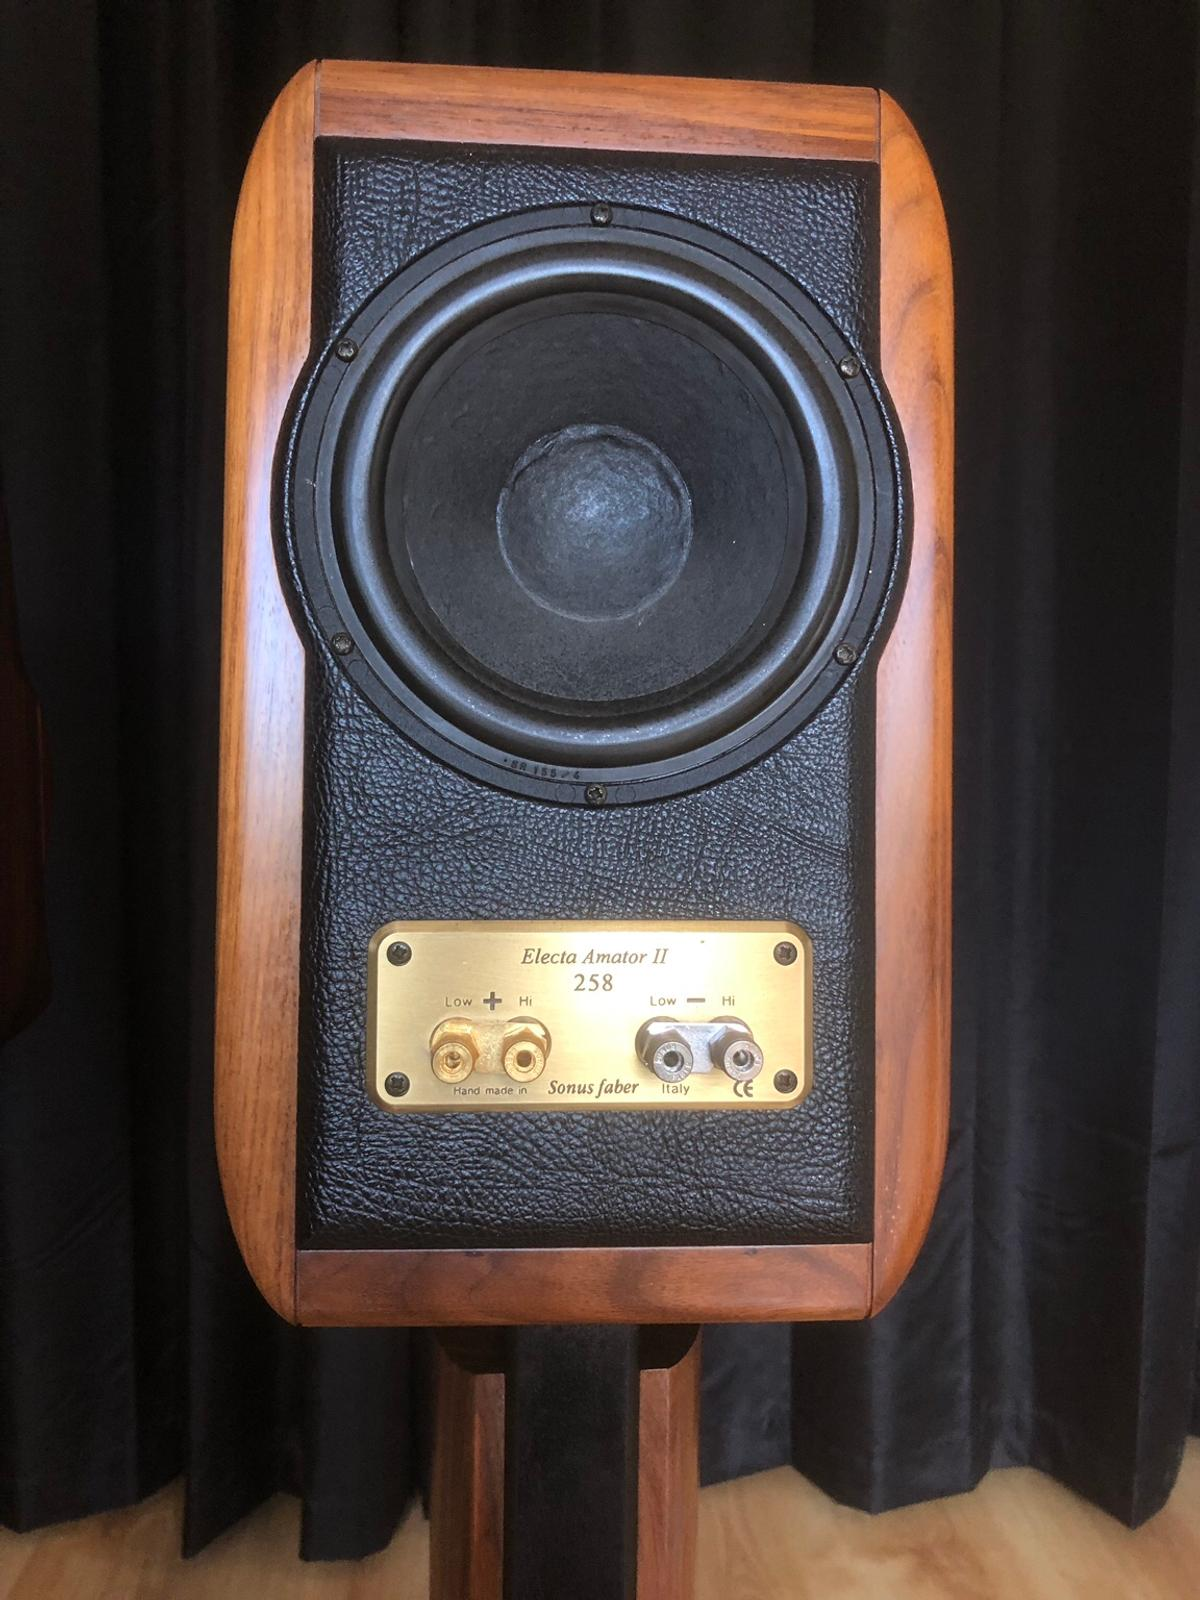 Sonus Faber Electa Amator II Speakers in HP12 Wycombe for